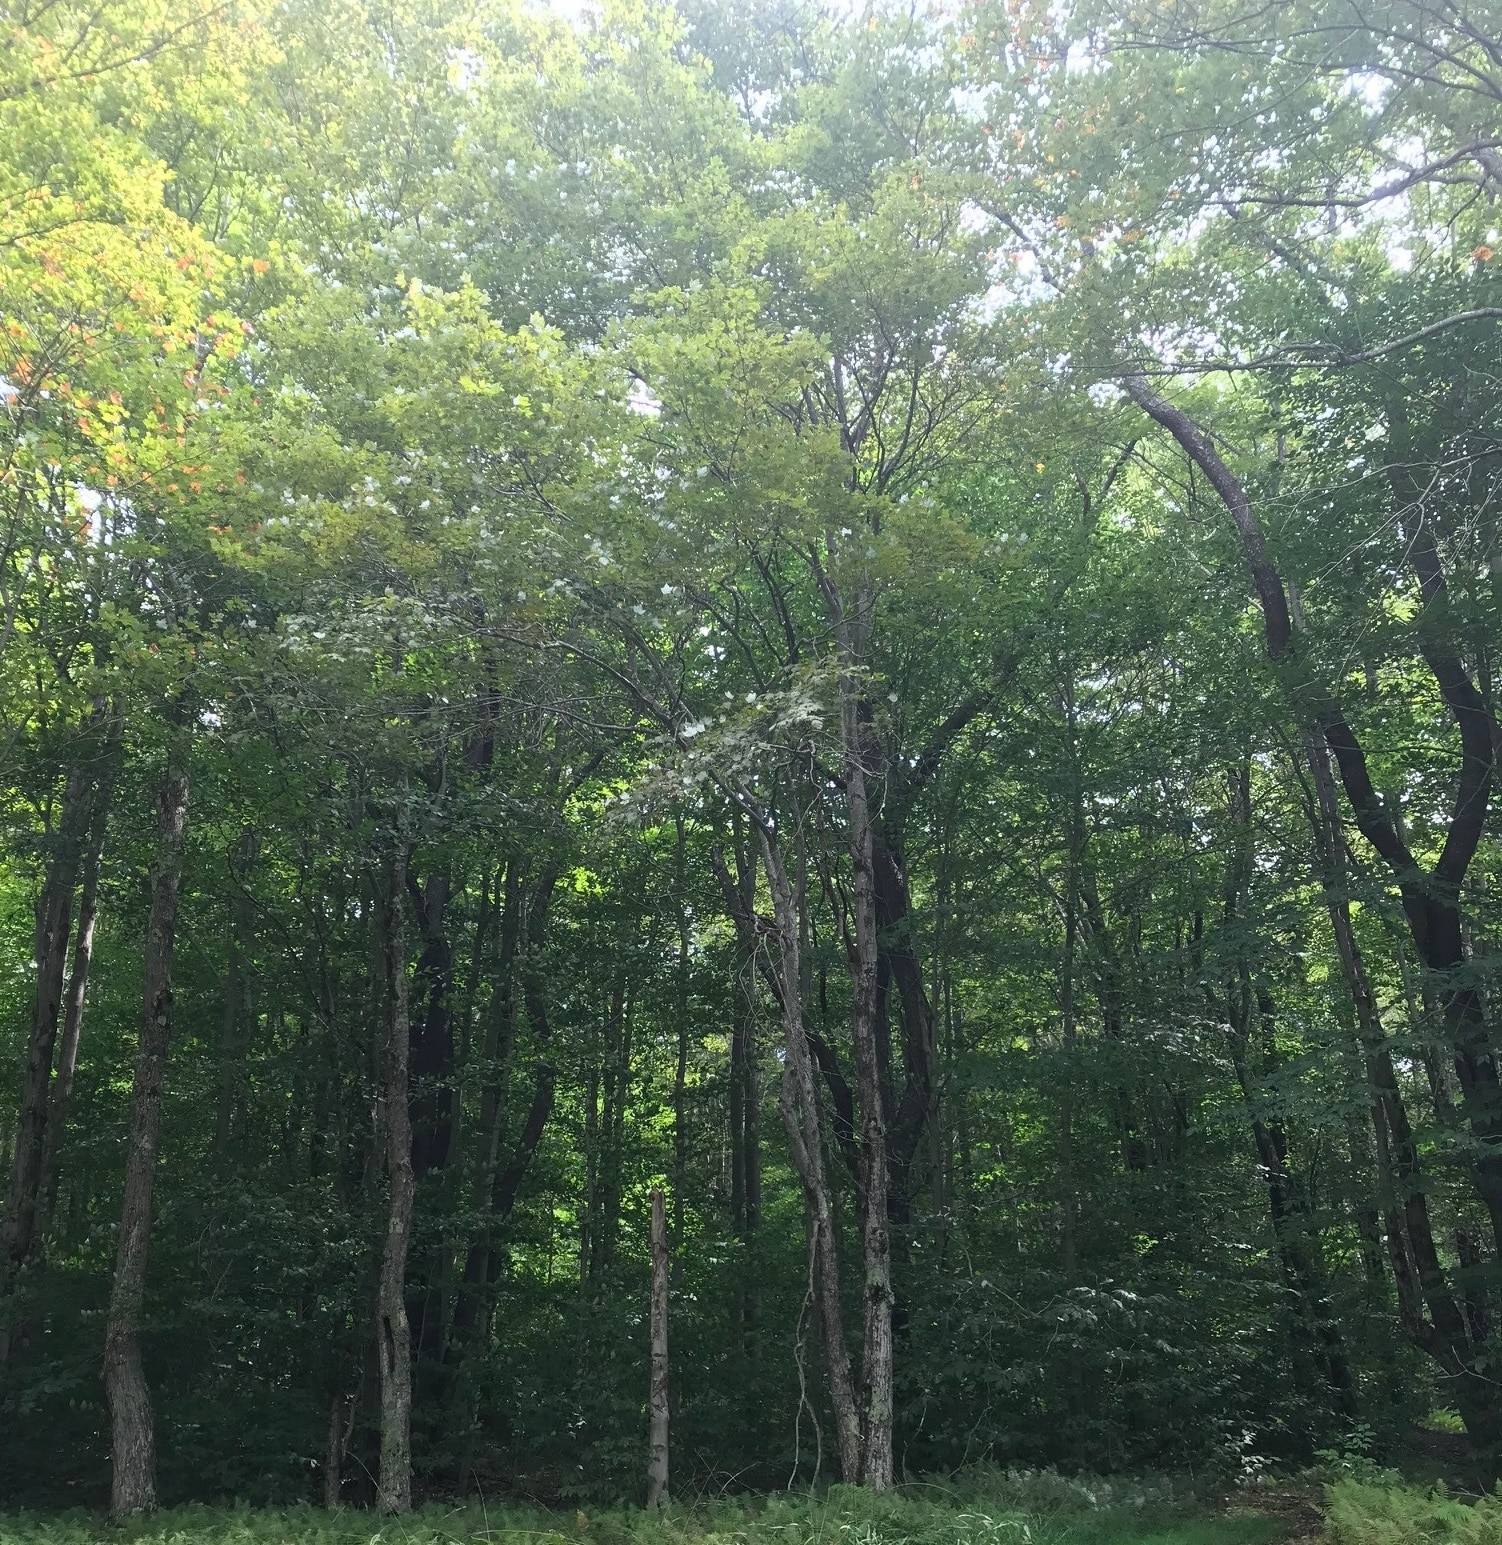 trees in the part of Canaan Valley National Wildlife Refuge proposed for logging